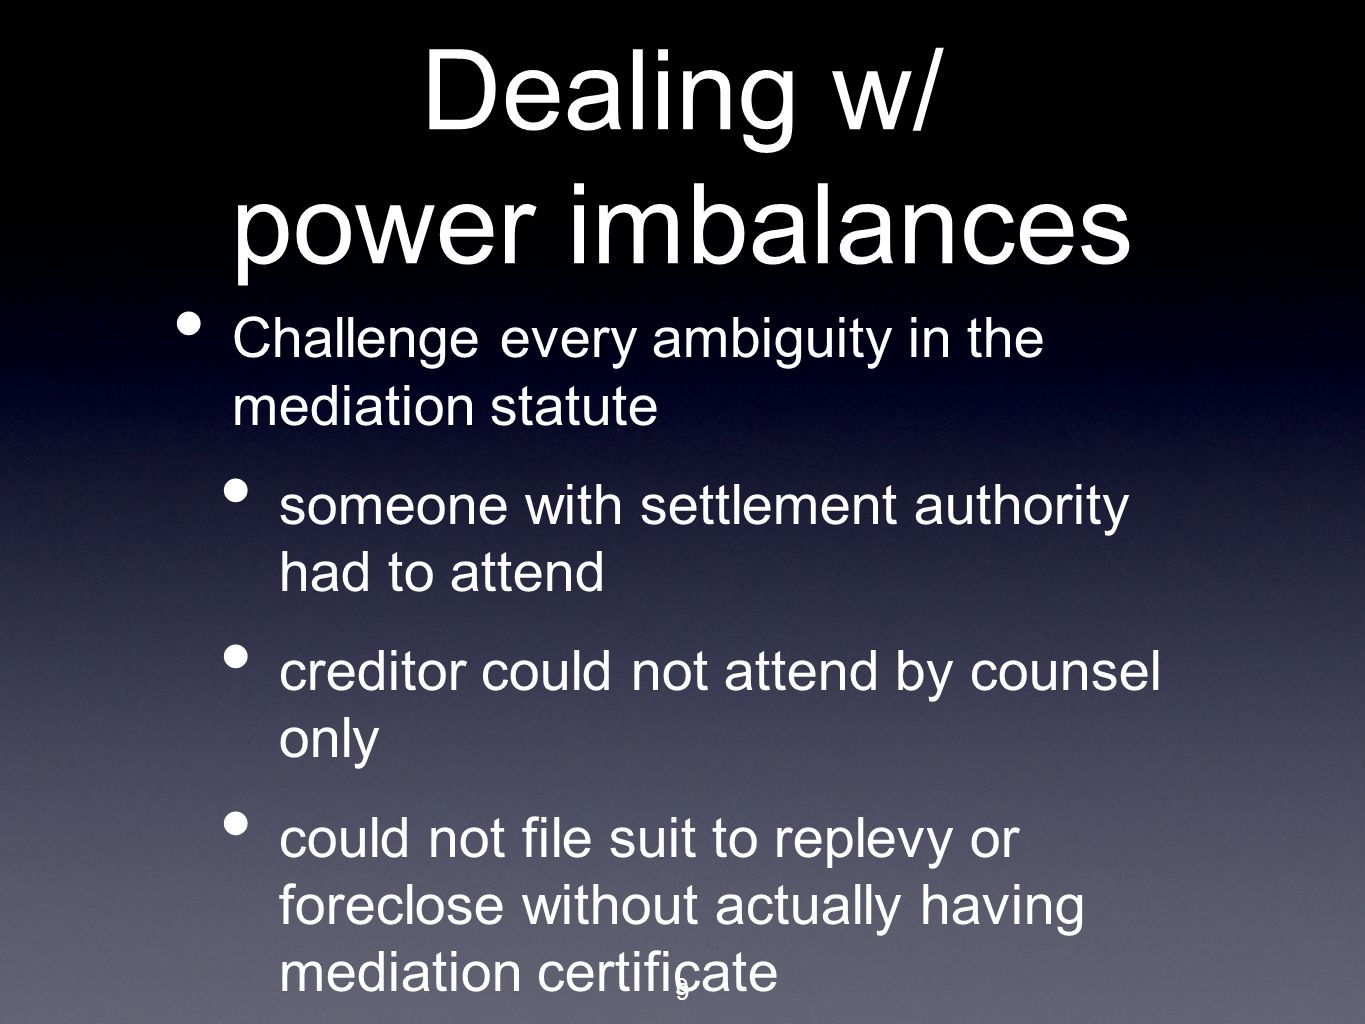 9 Dealing w/ power imbalances Challenge every ambiguity in the mediation statute someone with settlement authority had to attend creditor could not attend by counsel only could not file suit to replevy or foreclose without actually having mediation certificate 9